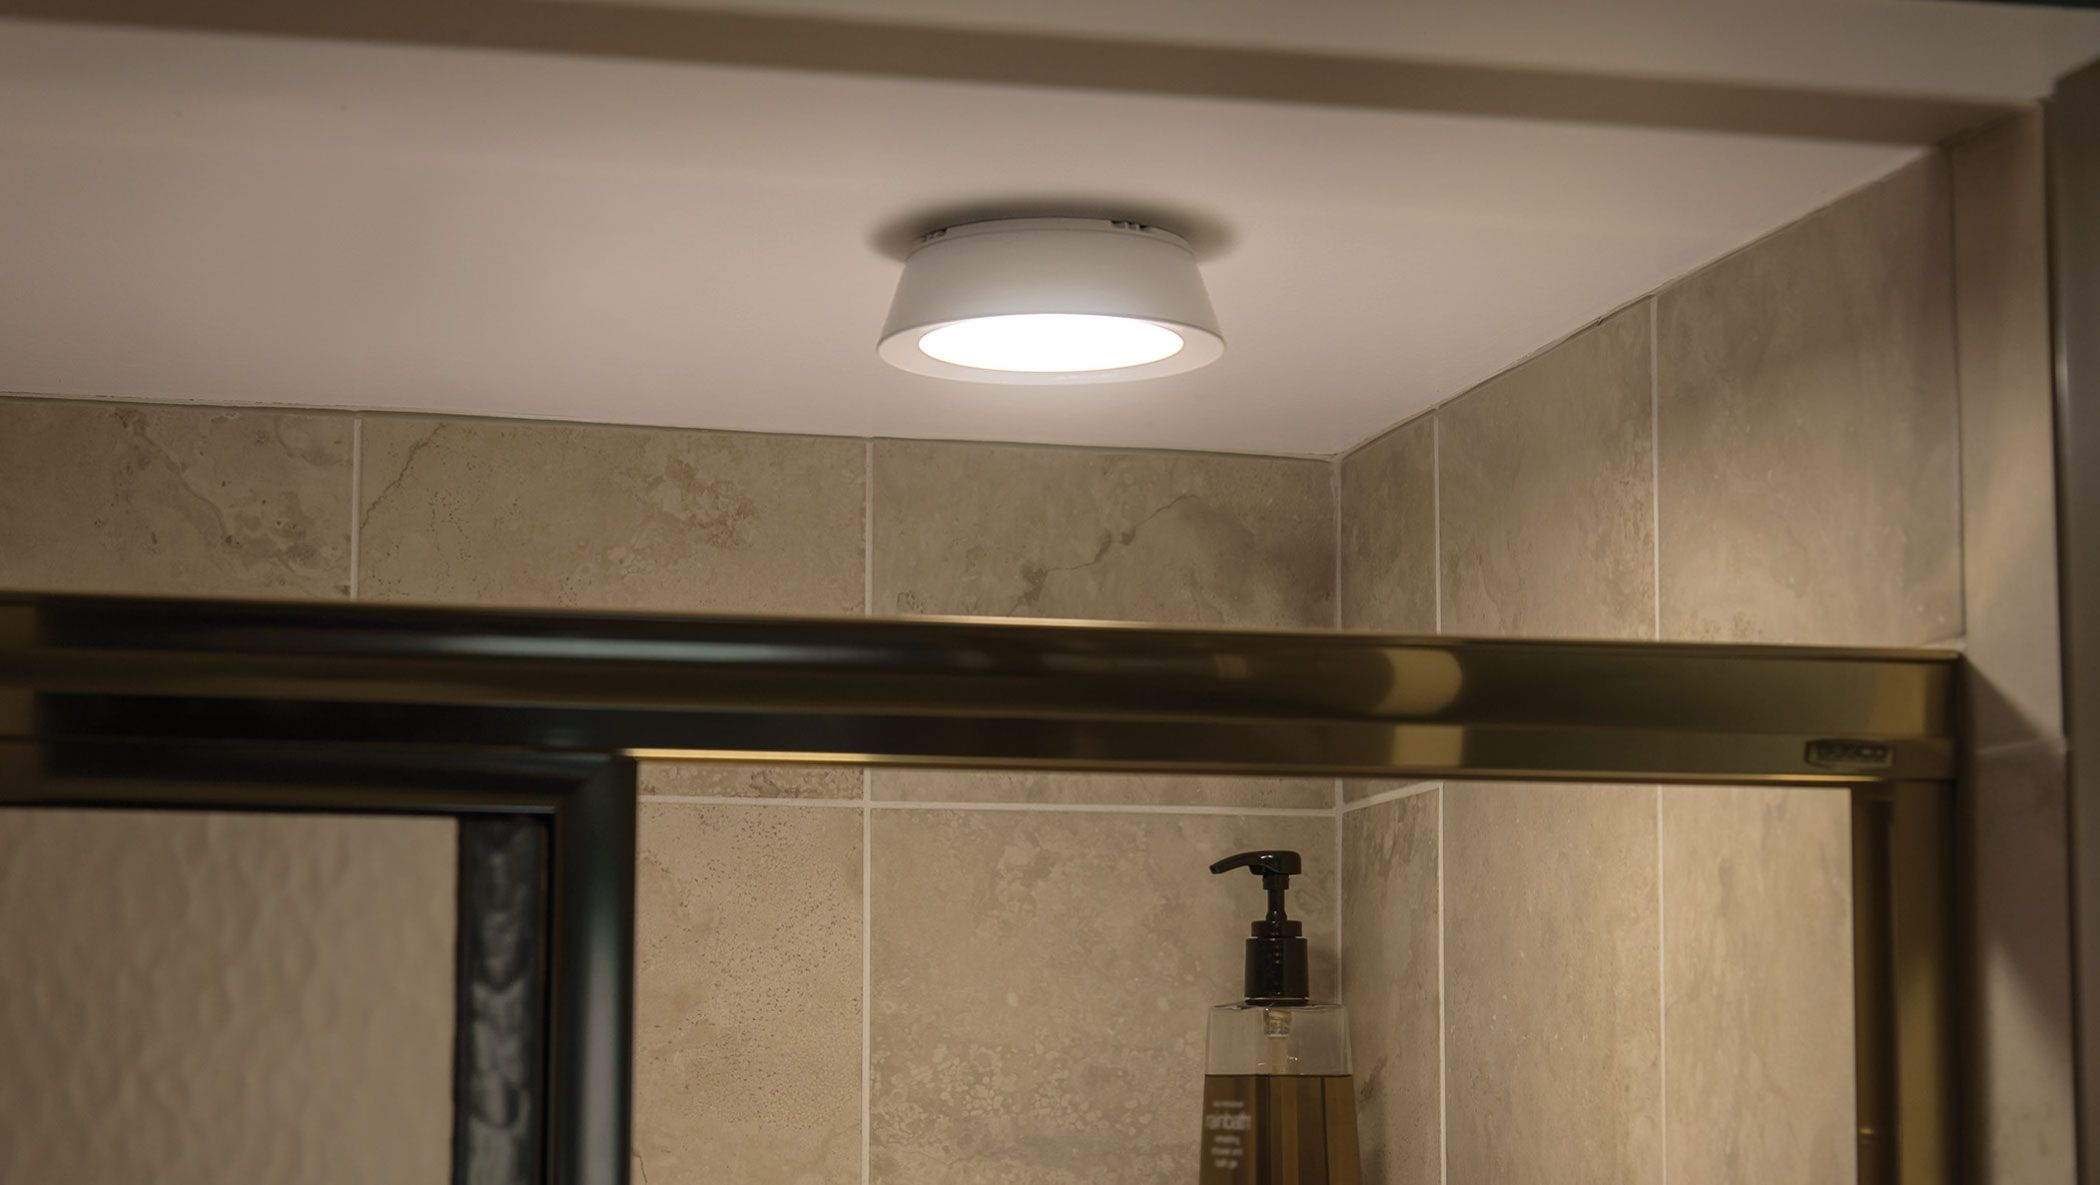 Wireless Led Ceiling Lights Battery Powered Mr Beams Ceiling Lights Wireless Lighting Ceilings Led Ceiling Lights